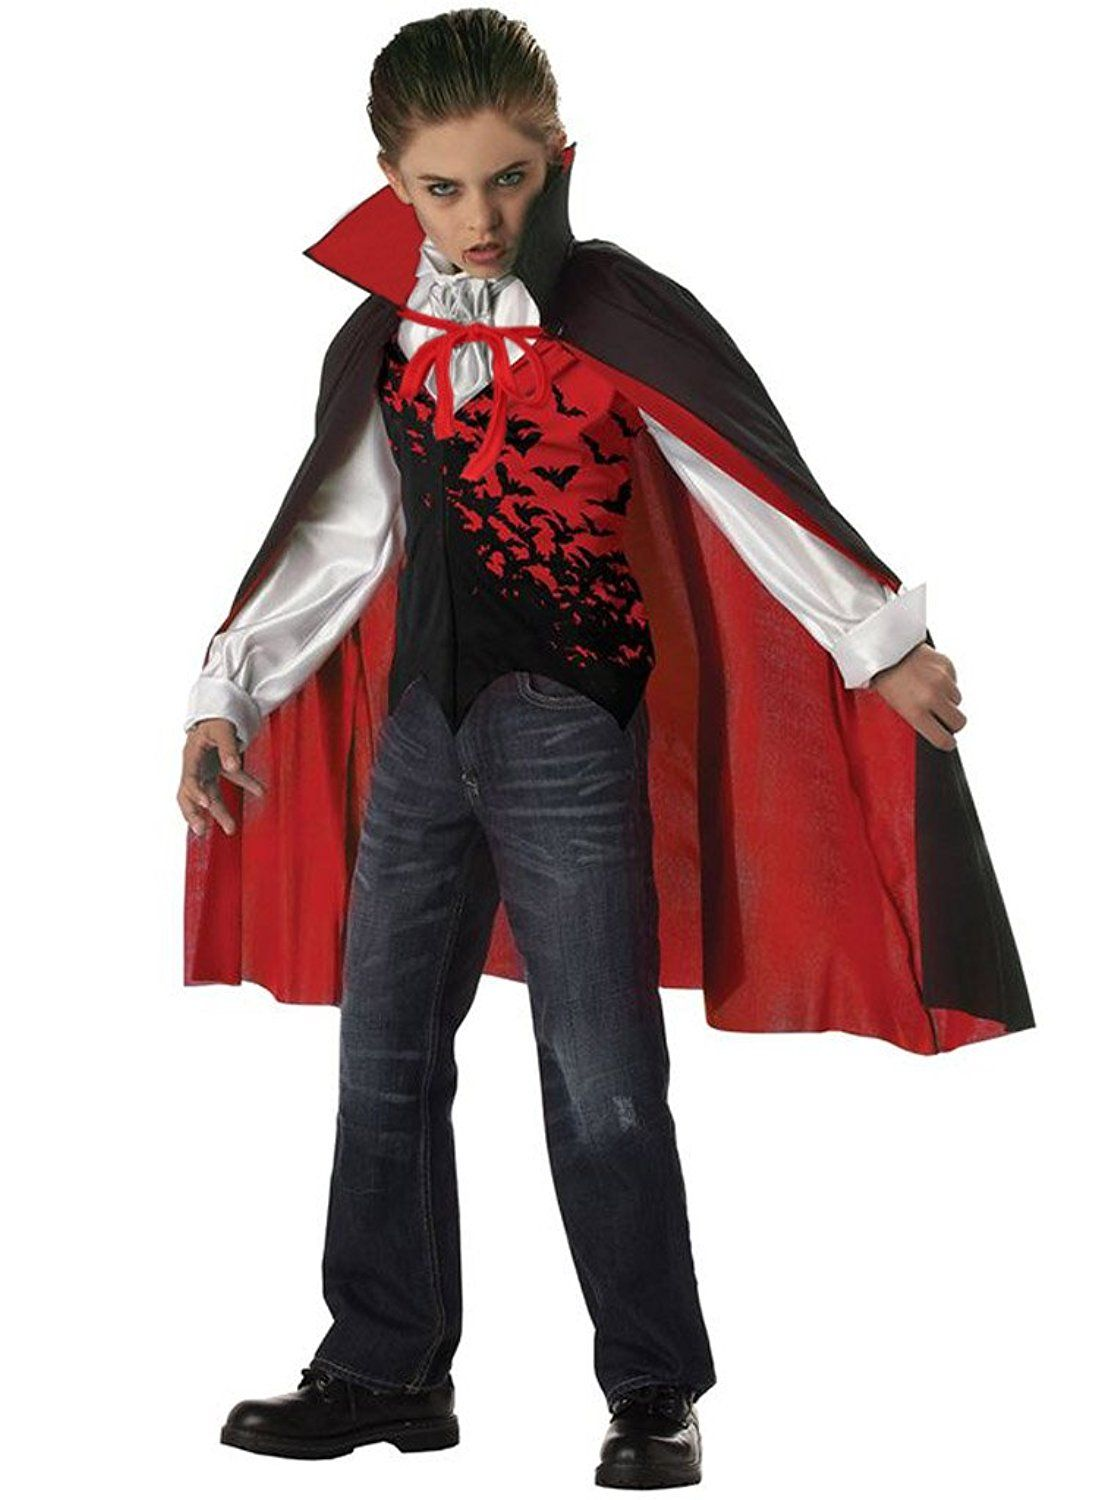 Meeyou kids' Vampire Cape Costume * Check out this great